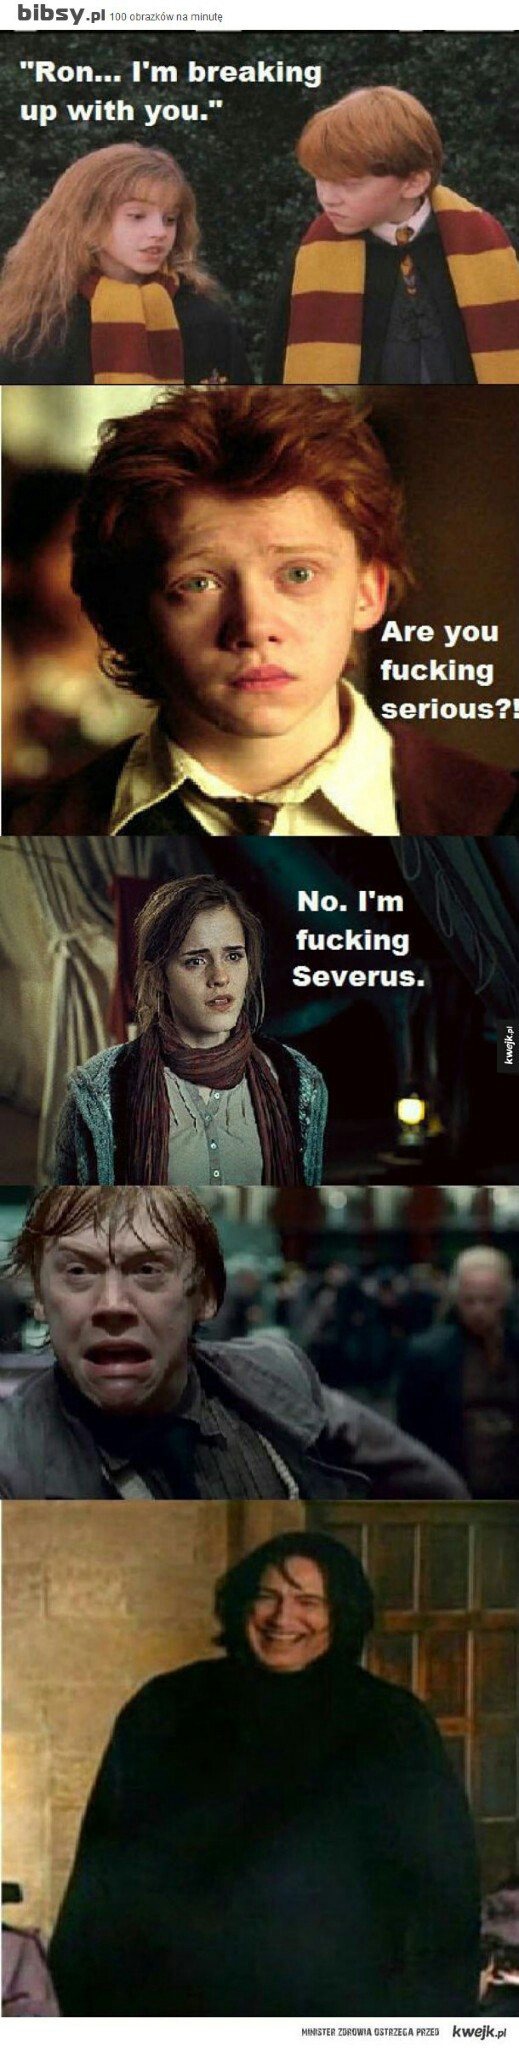 This Is Inappropriate But It Is Hilarious Af Harry Potter Memes Harry Potter Memes Hilarious Harry Potter